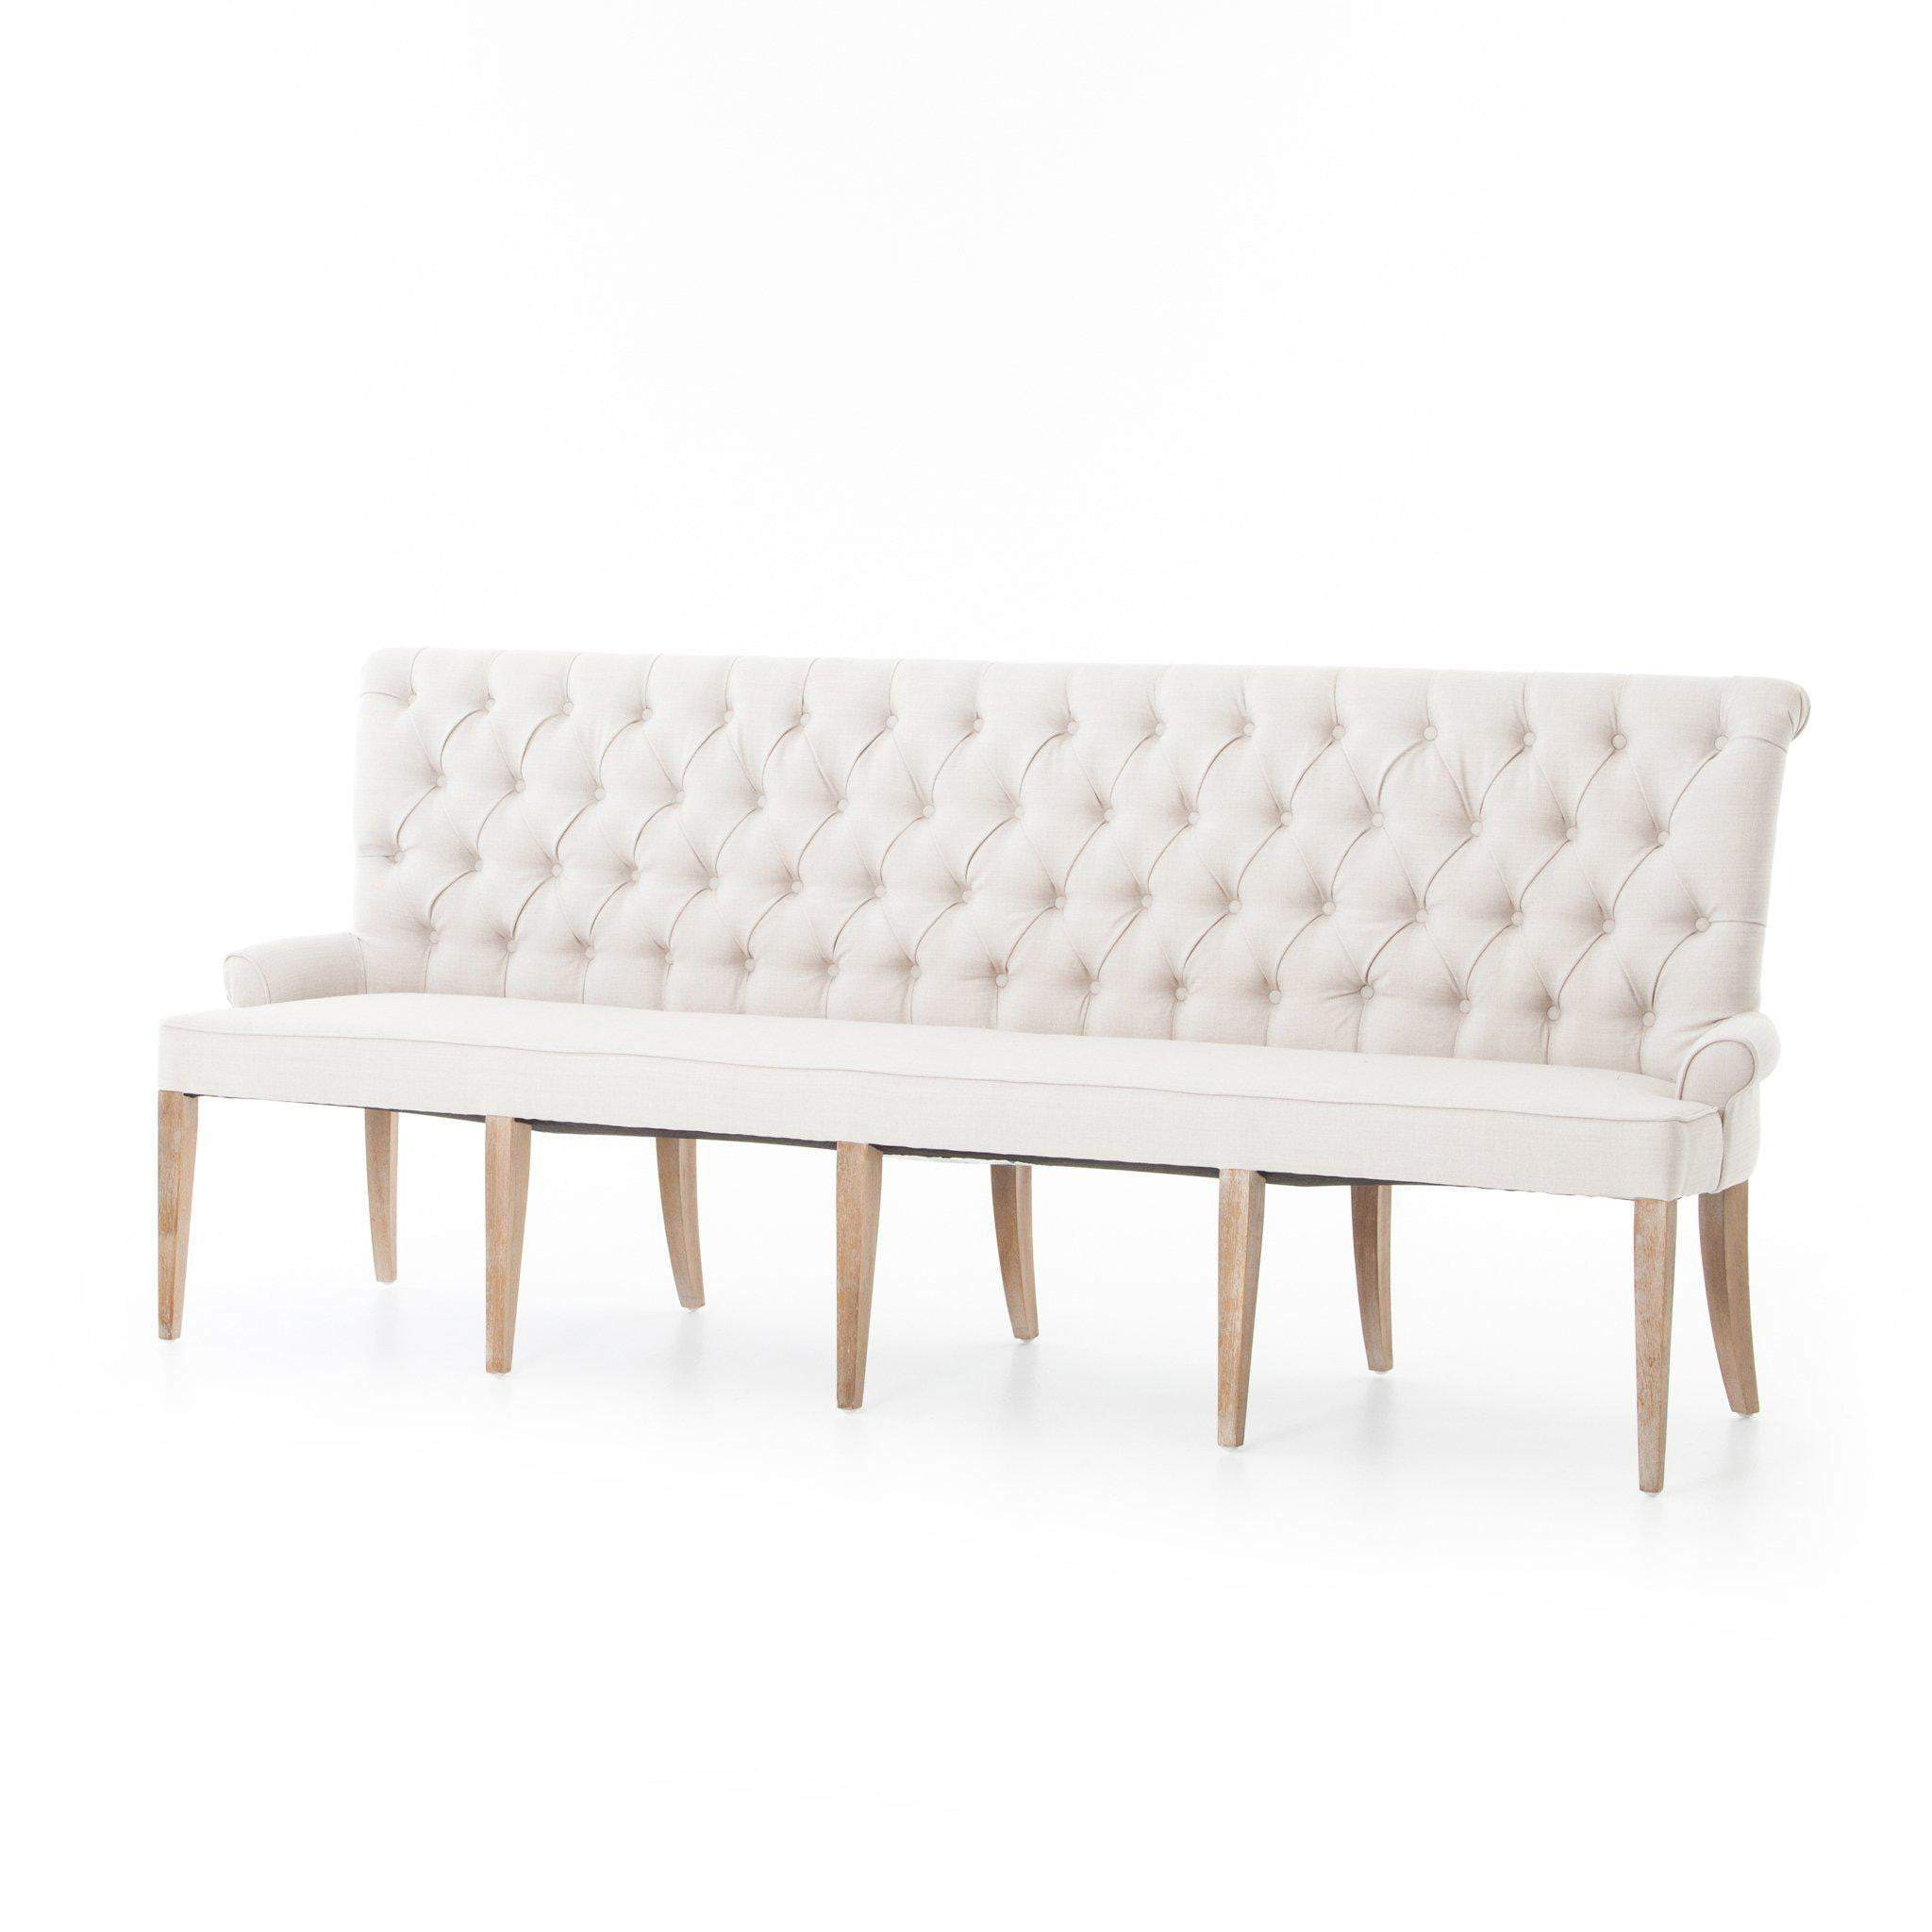 Theory Collection Banquette: Light Sand-Dining Bench-Parker Gwen